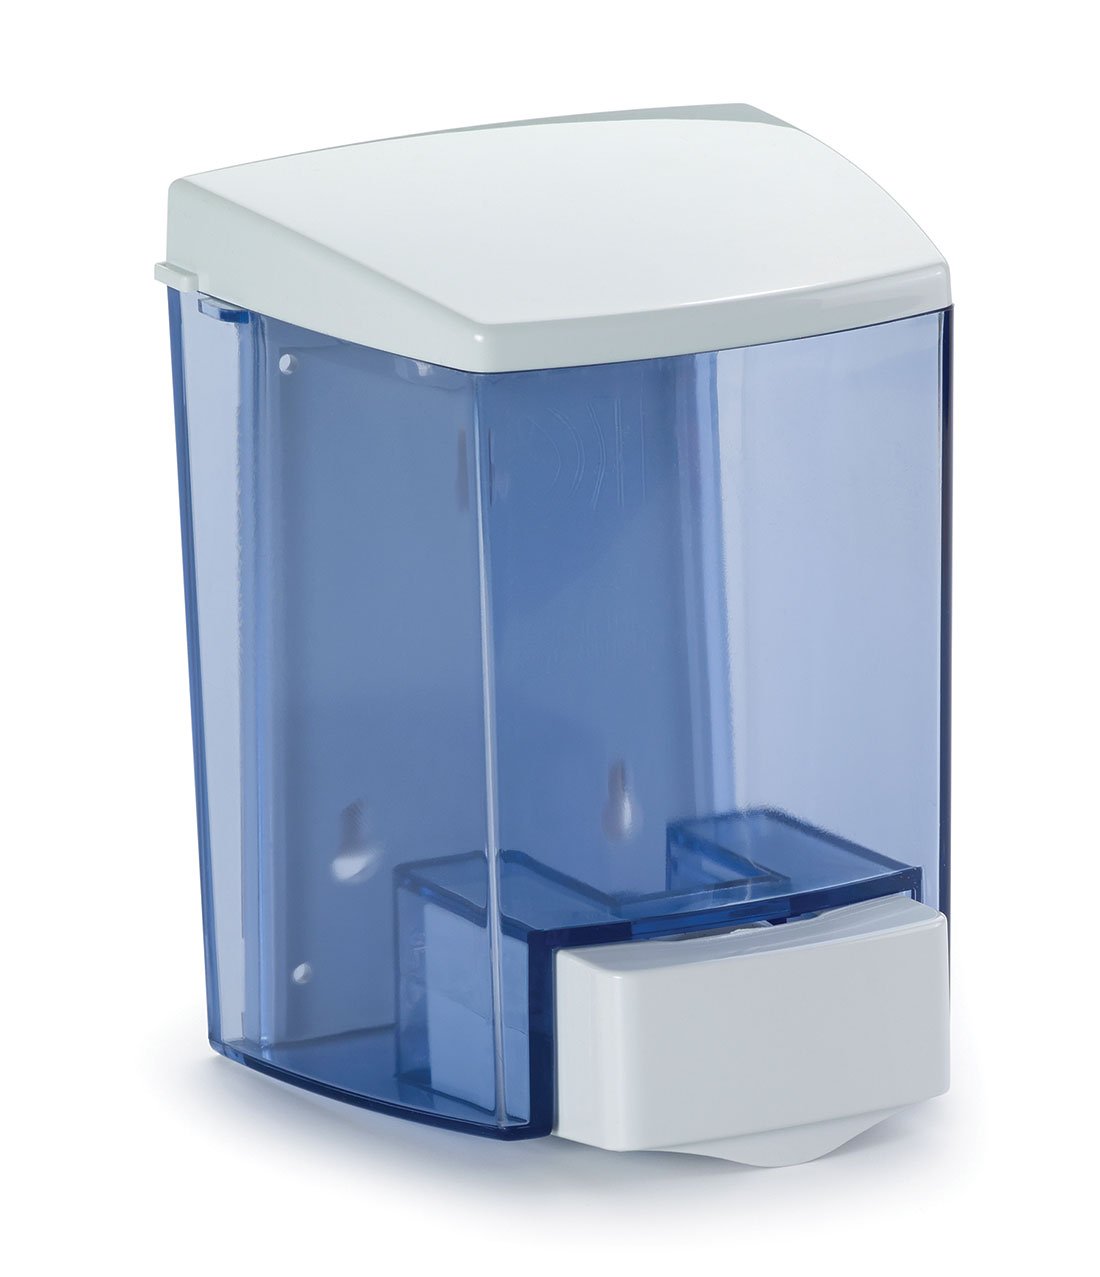 3700-192 Krowne Metal H-116 hand soap / sanitizer dispenser